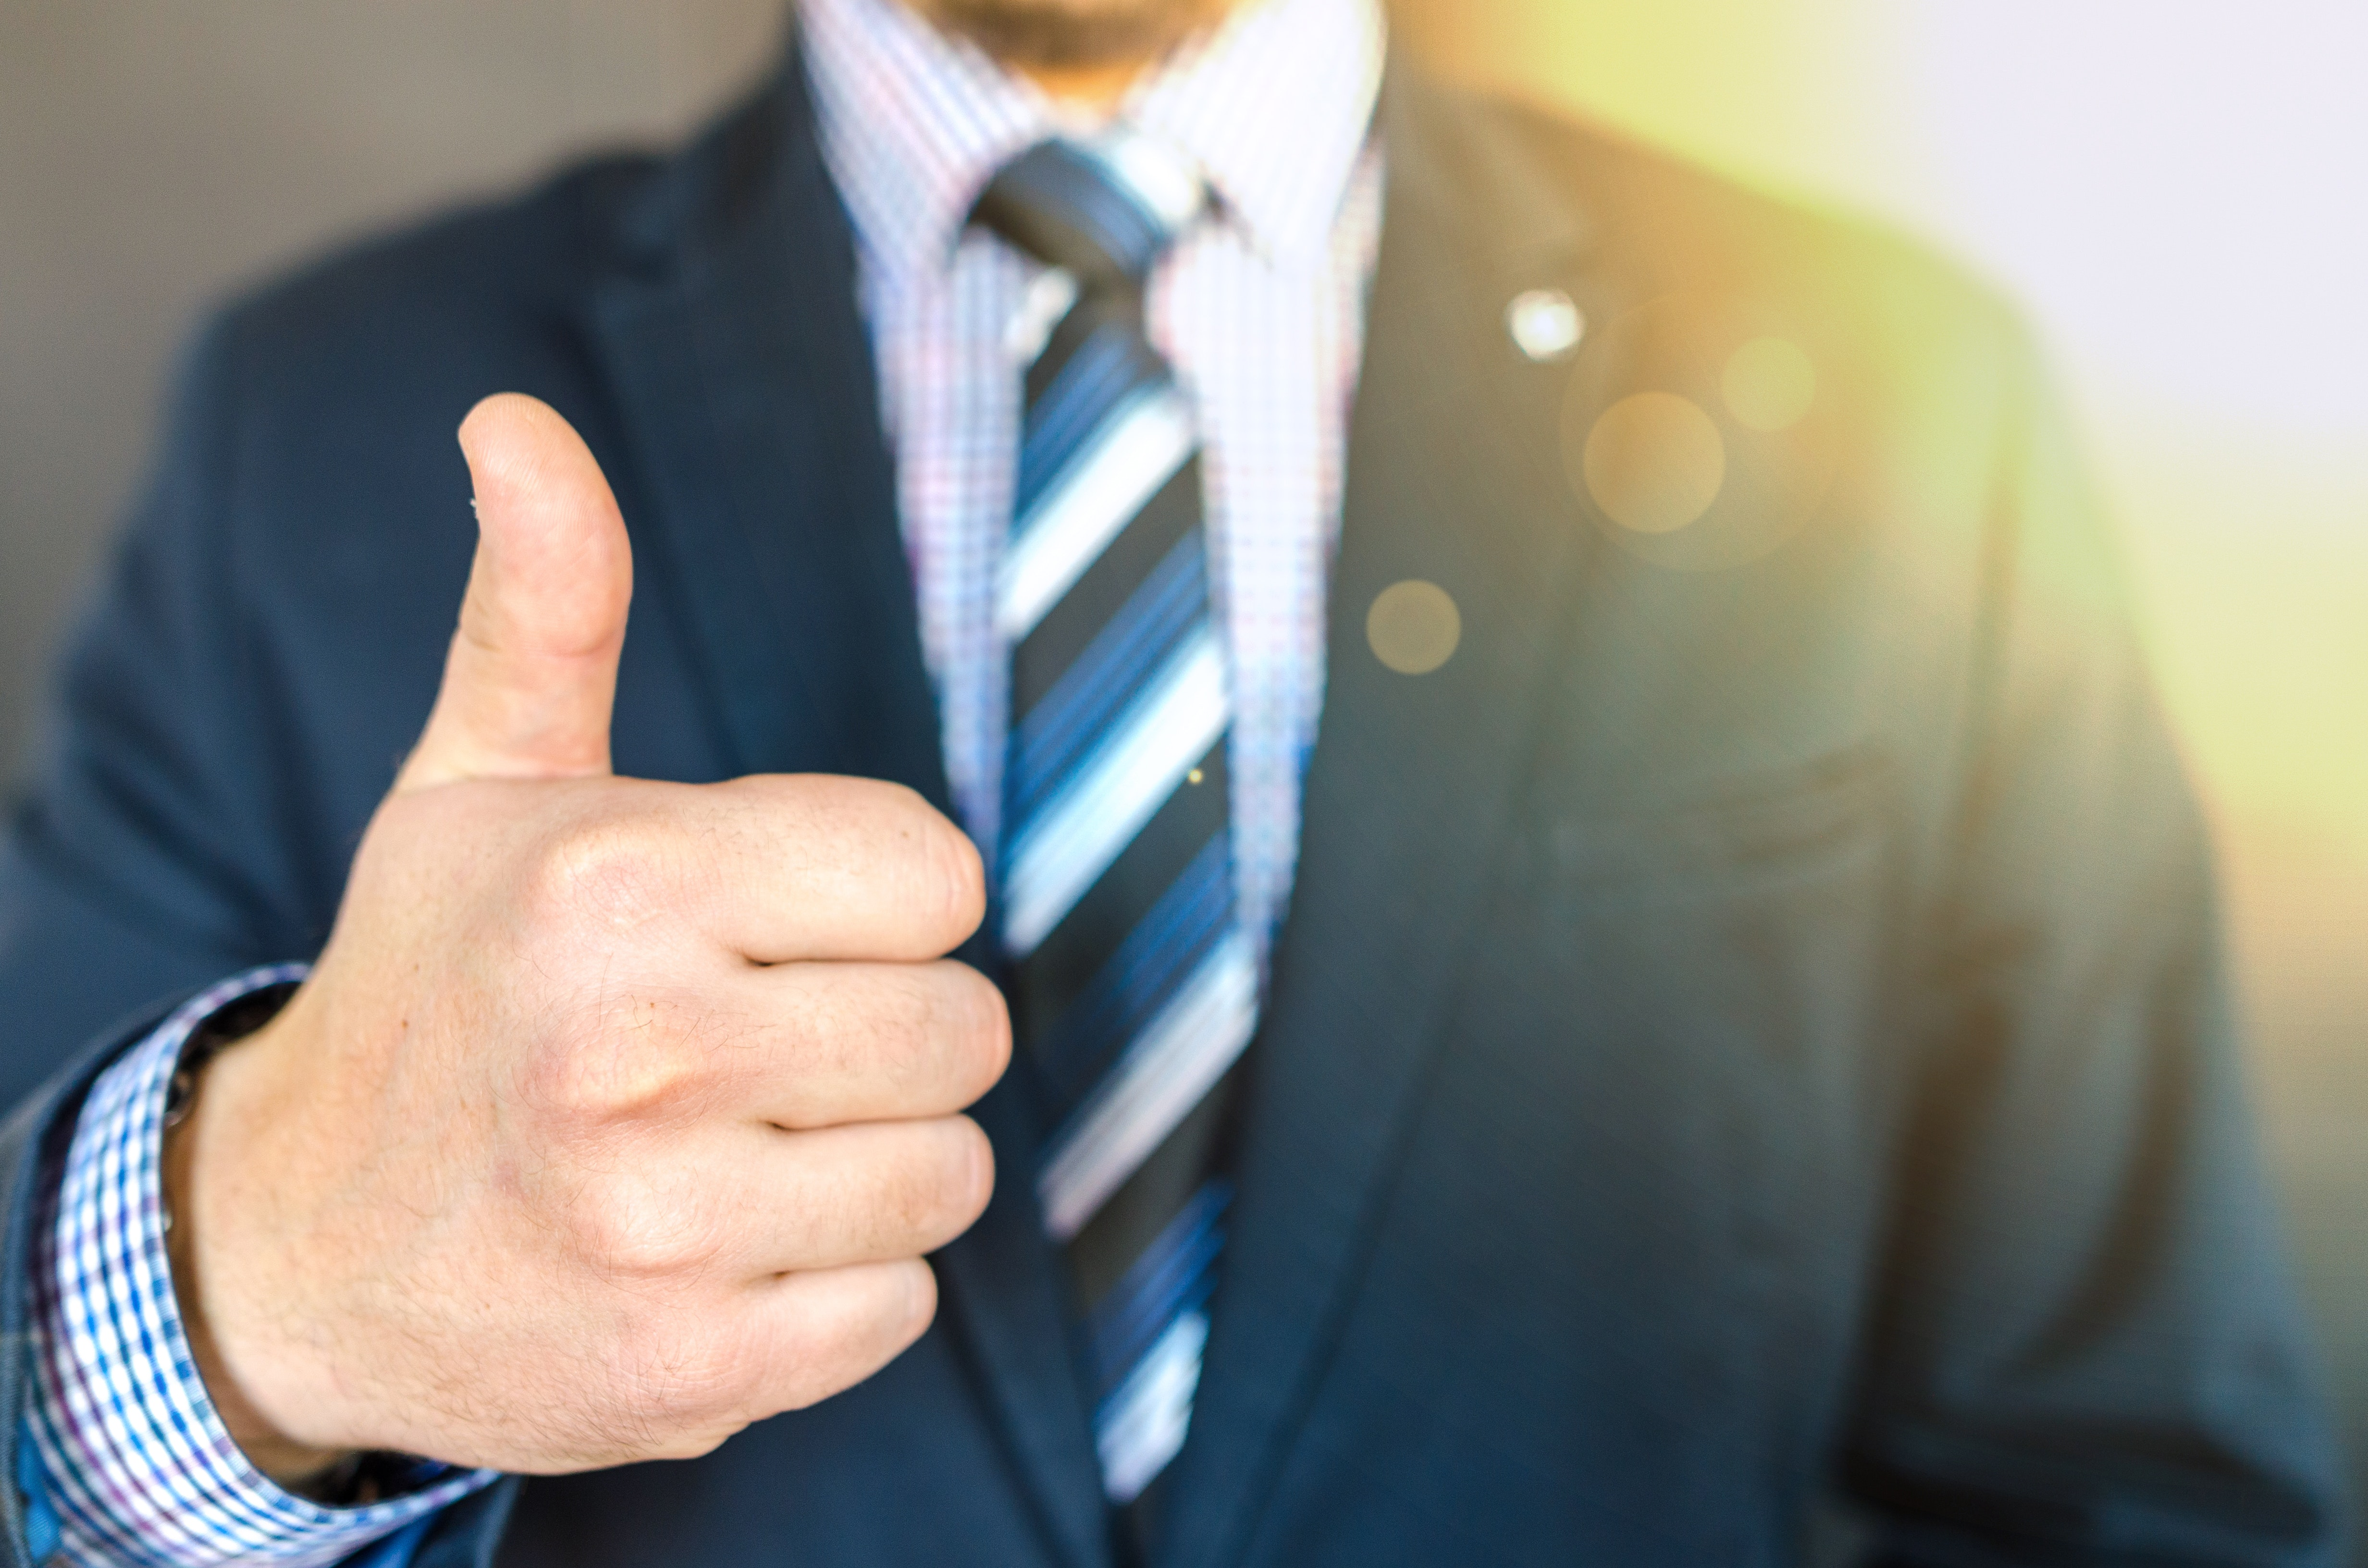 Close-up Photo of Man Wearing Black Suit Jacket Doing Thumbs Up Gesture, Adult, Standing, Man, Office, HQ Photo